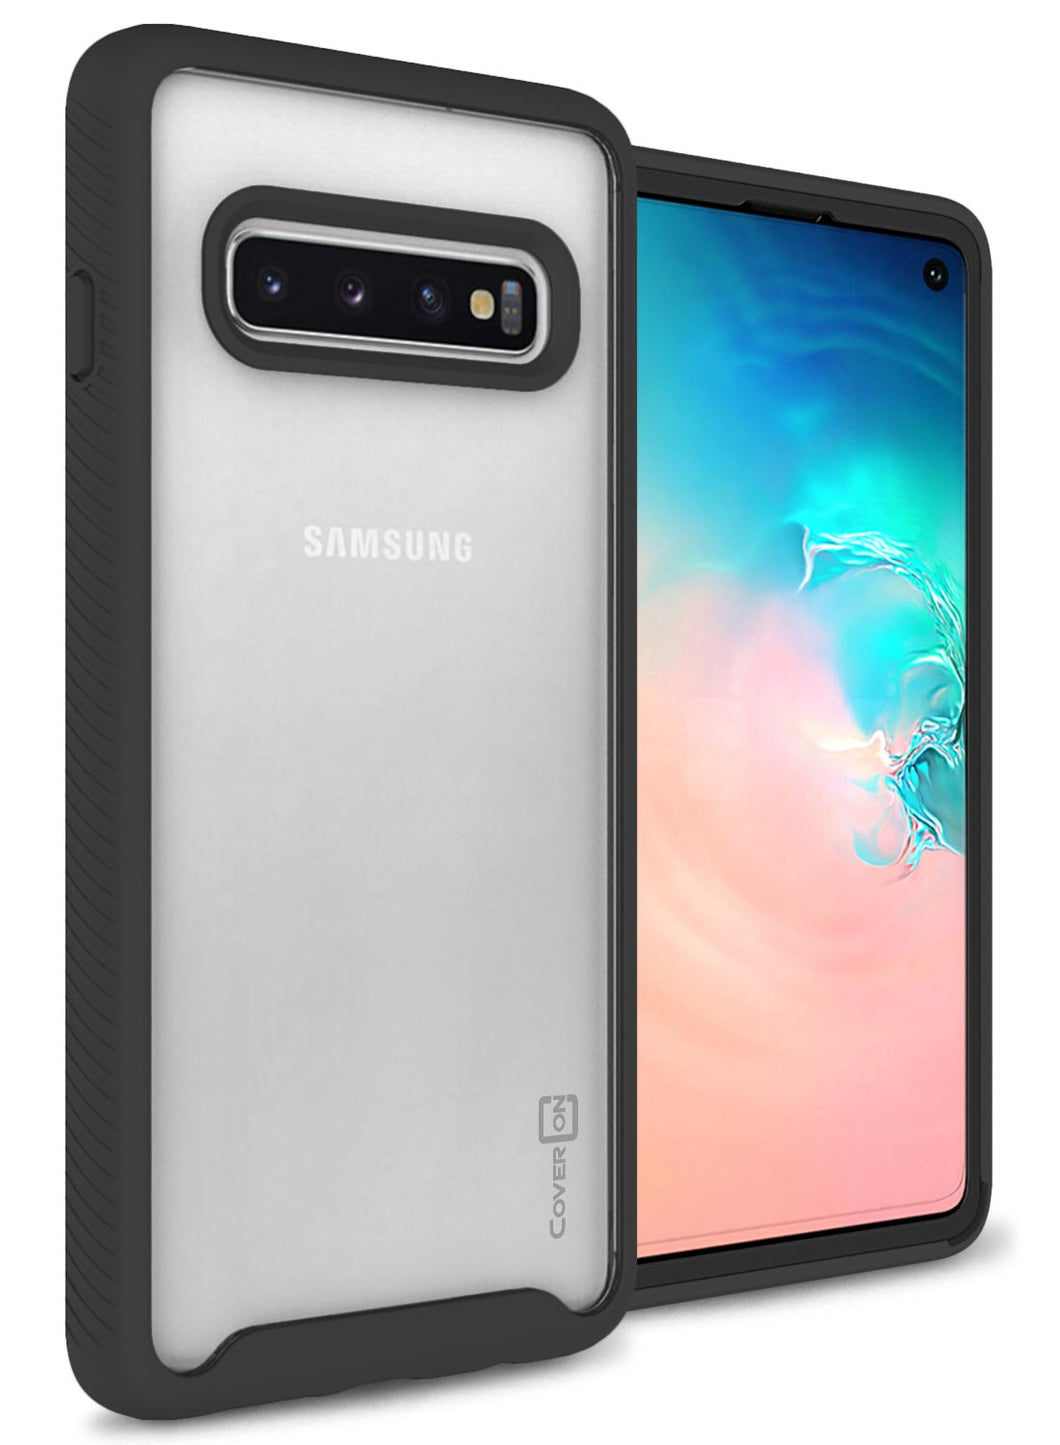 Samsung Galaxy S10 Case - Heavy Duty Shockproof Clear Phone Cover - EOS Series